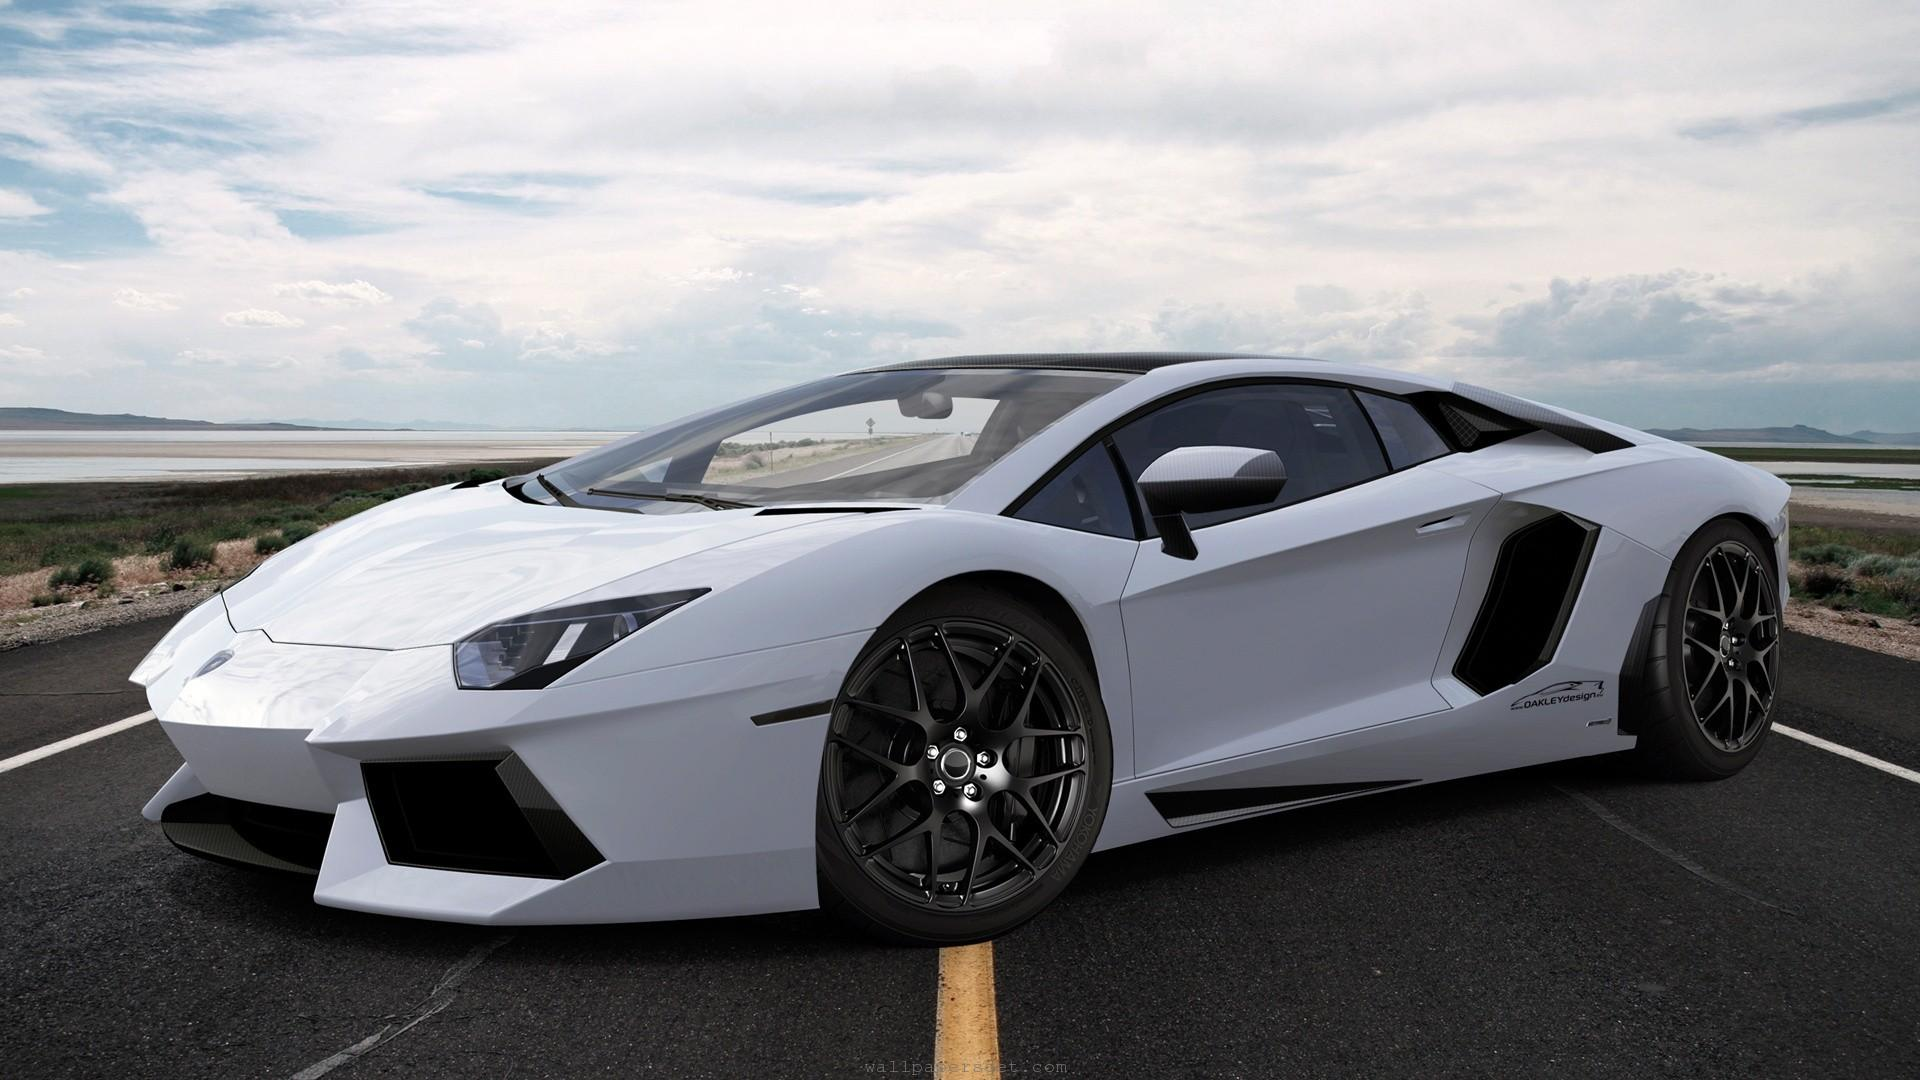 2014-Lamborghini-Aventador-White-Background-HD-Wallpaper ...